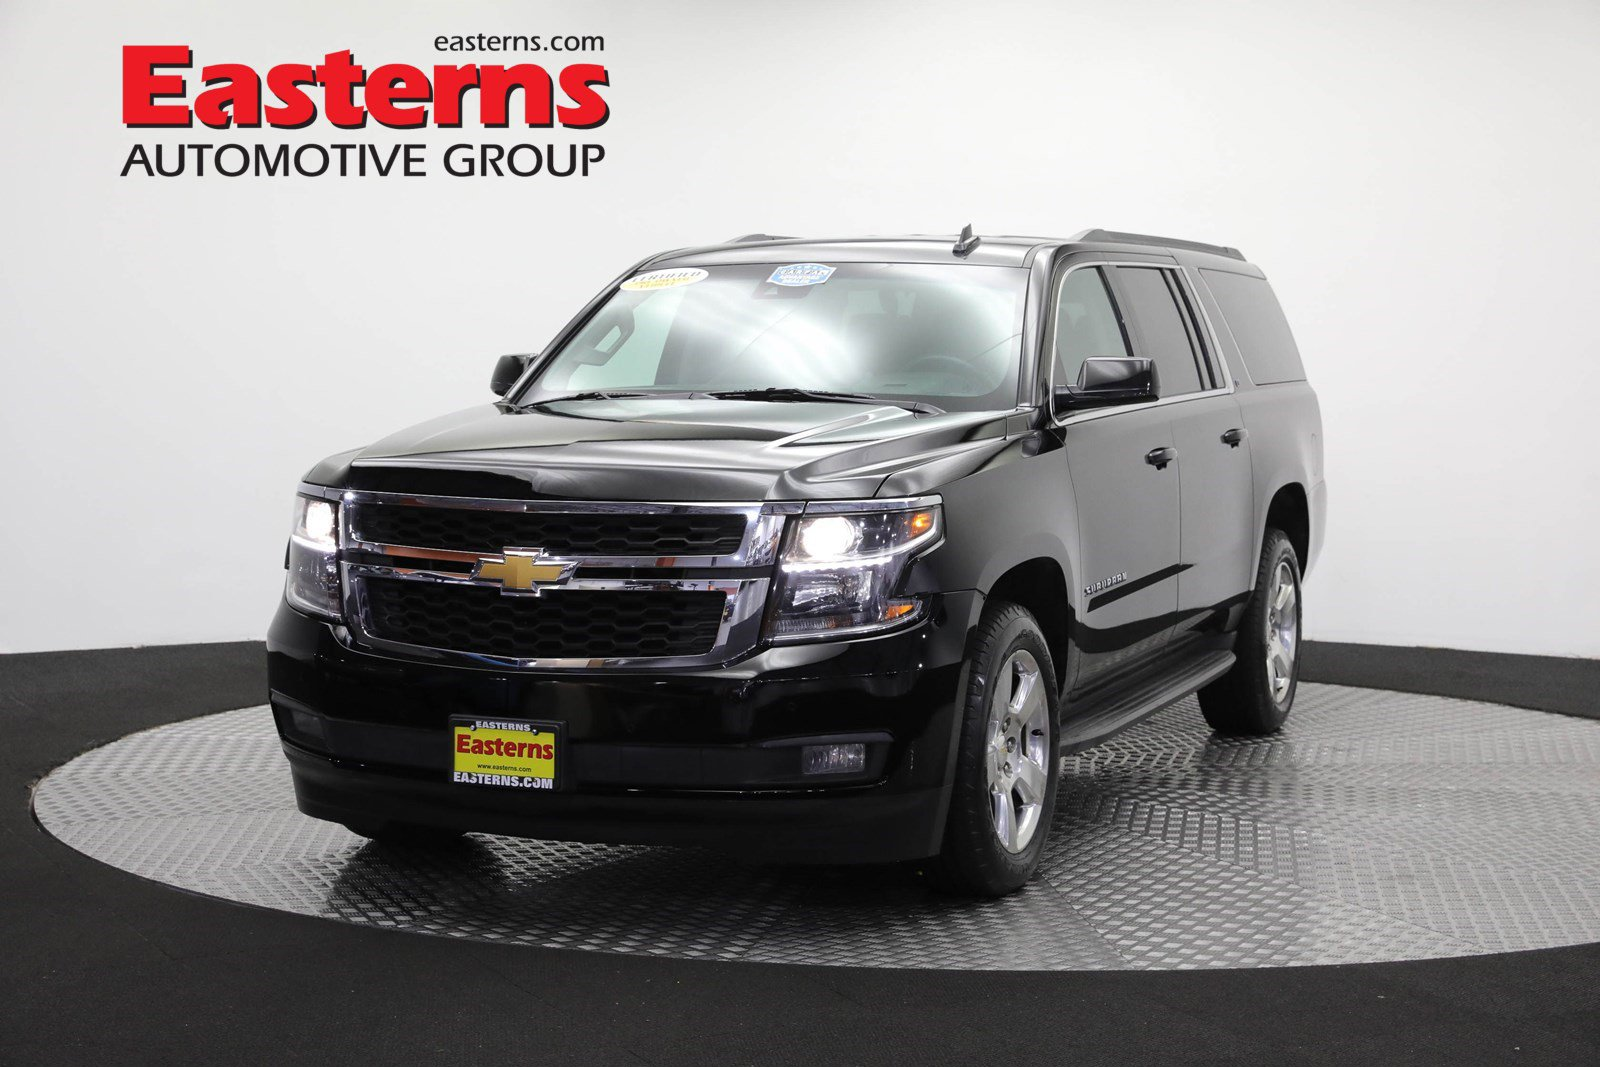 2016 Chevrolet Suburban 4WD LT w/ Luxury Package image